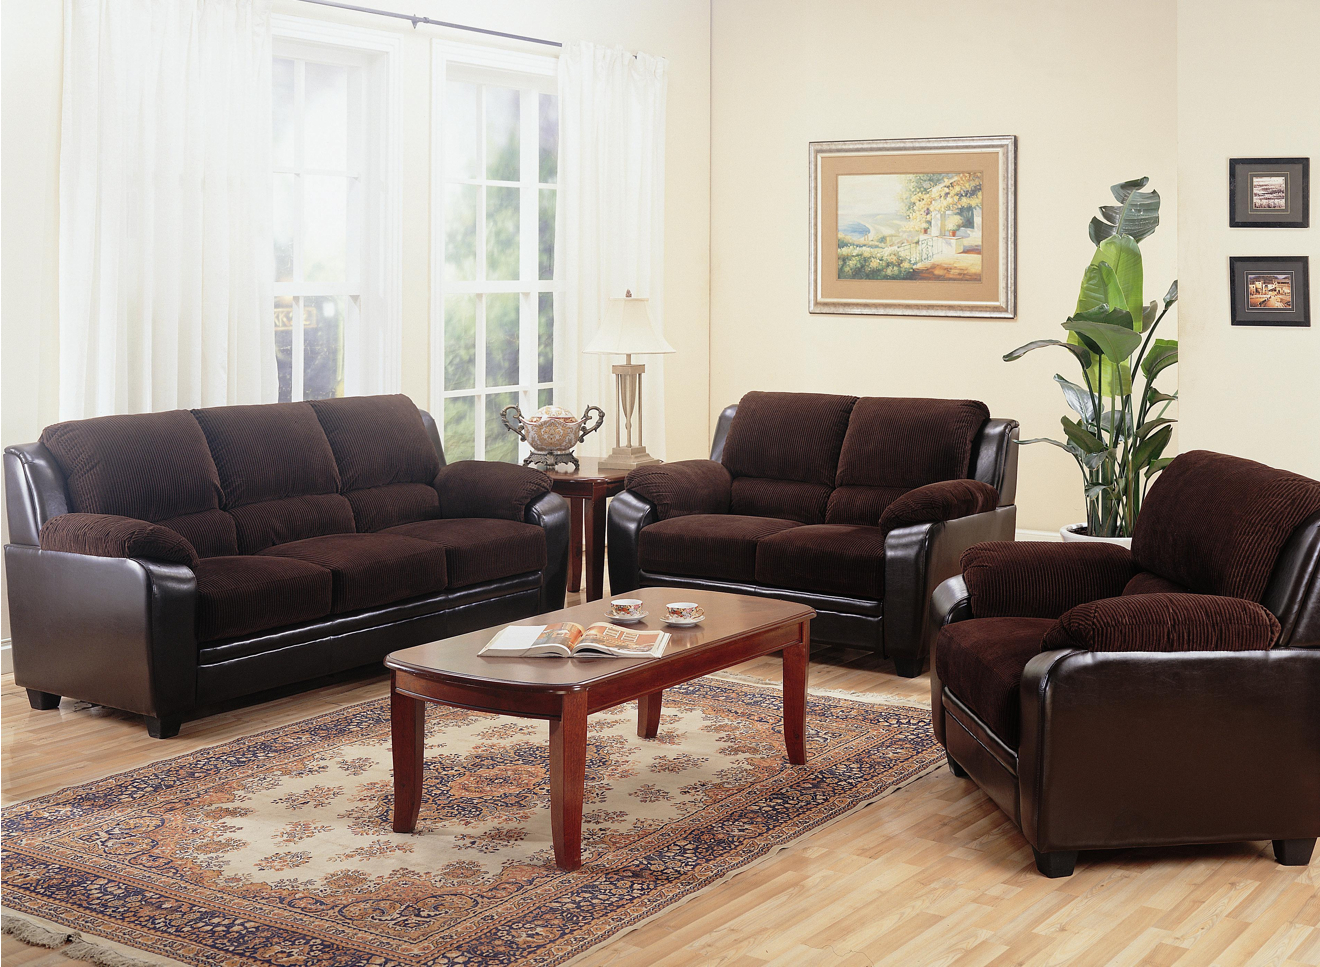 Chocolate Brown Living Room Sets 1320 x 967